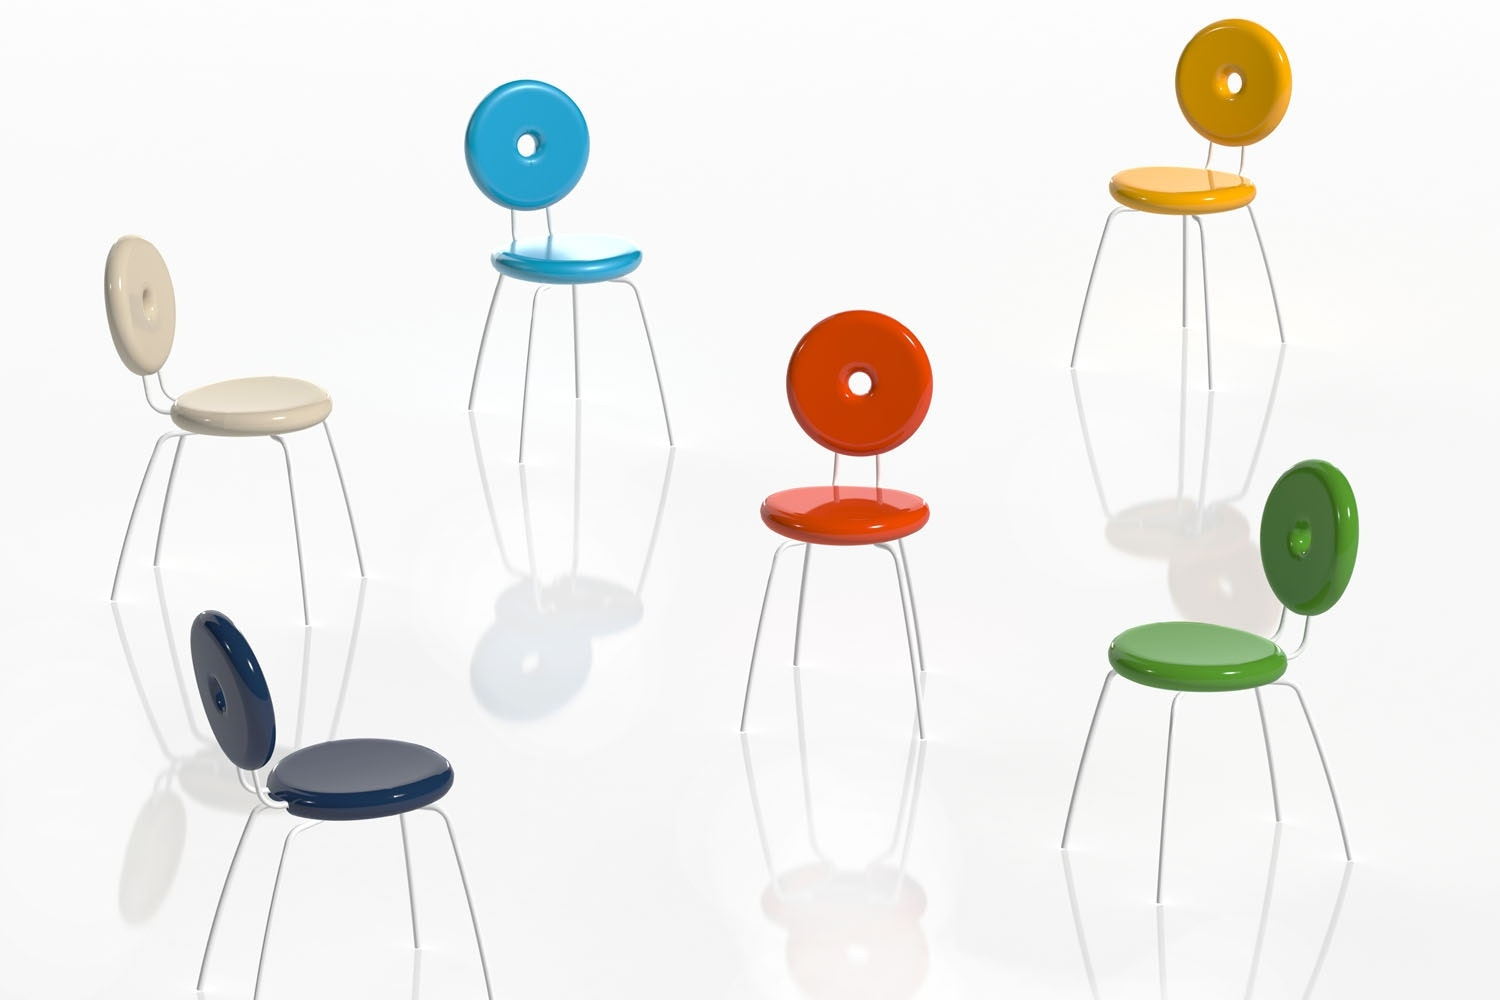 Ping Pong Pang Chair by Paolo Rizzatto for Serralunga